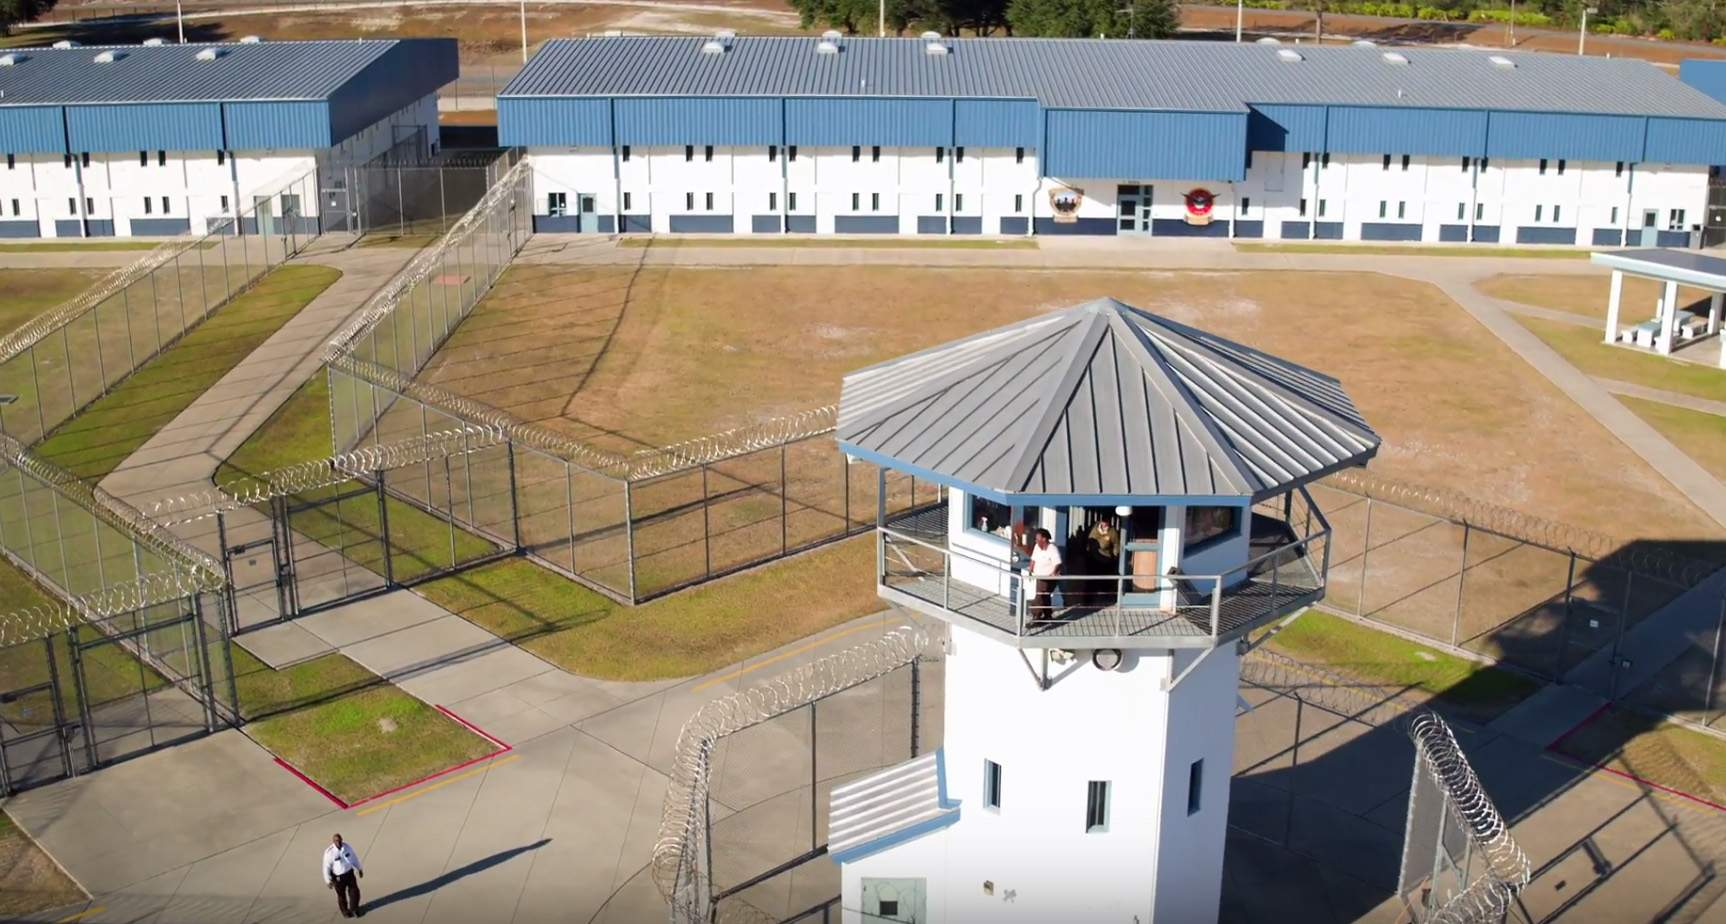 Spice and cell phones: Florida's prisons see new wave of